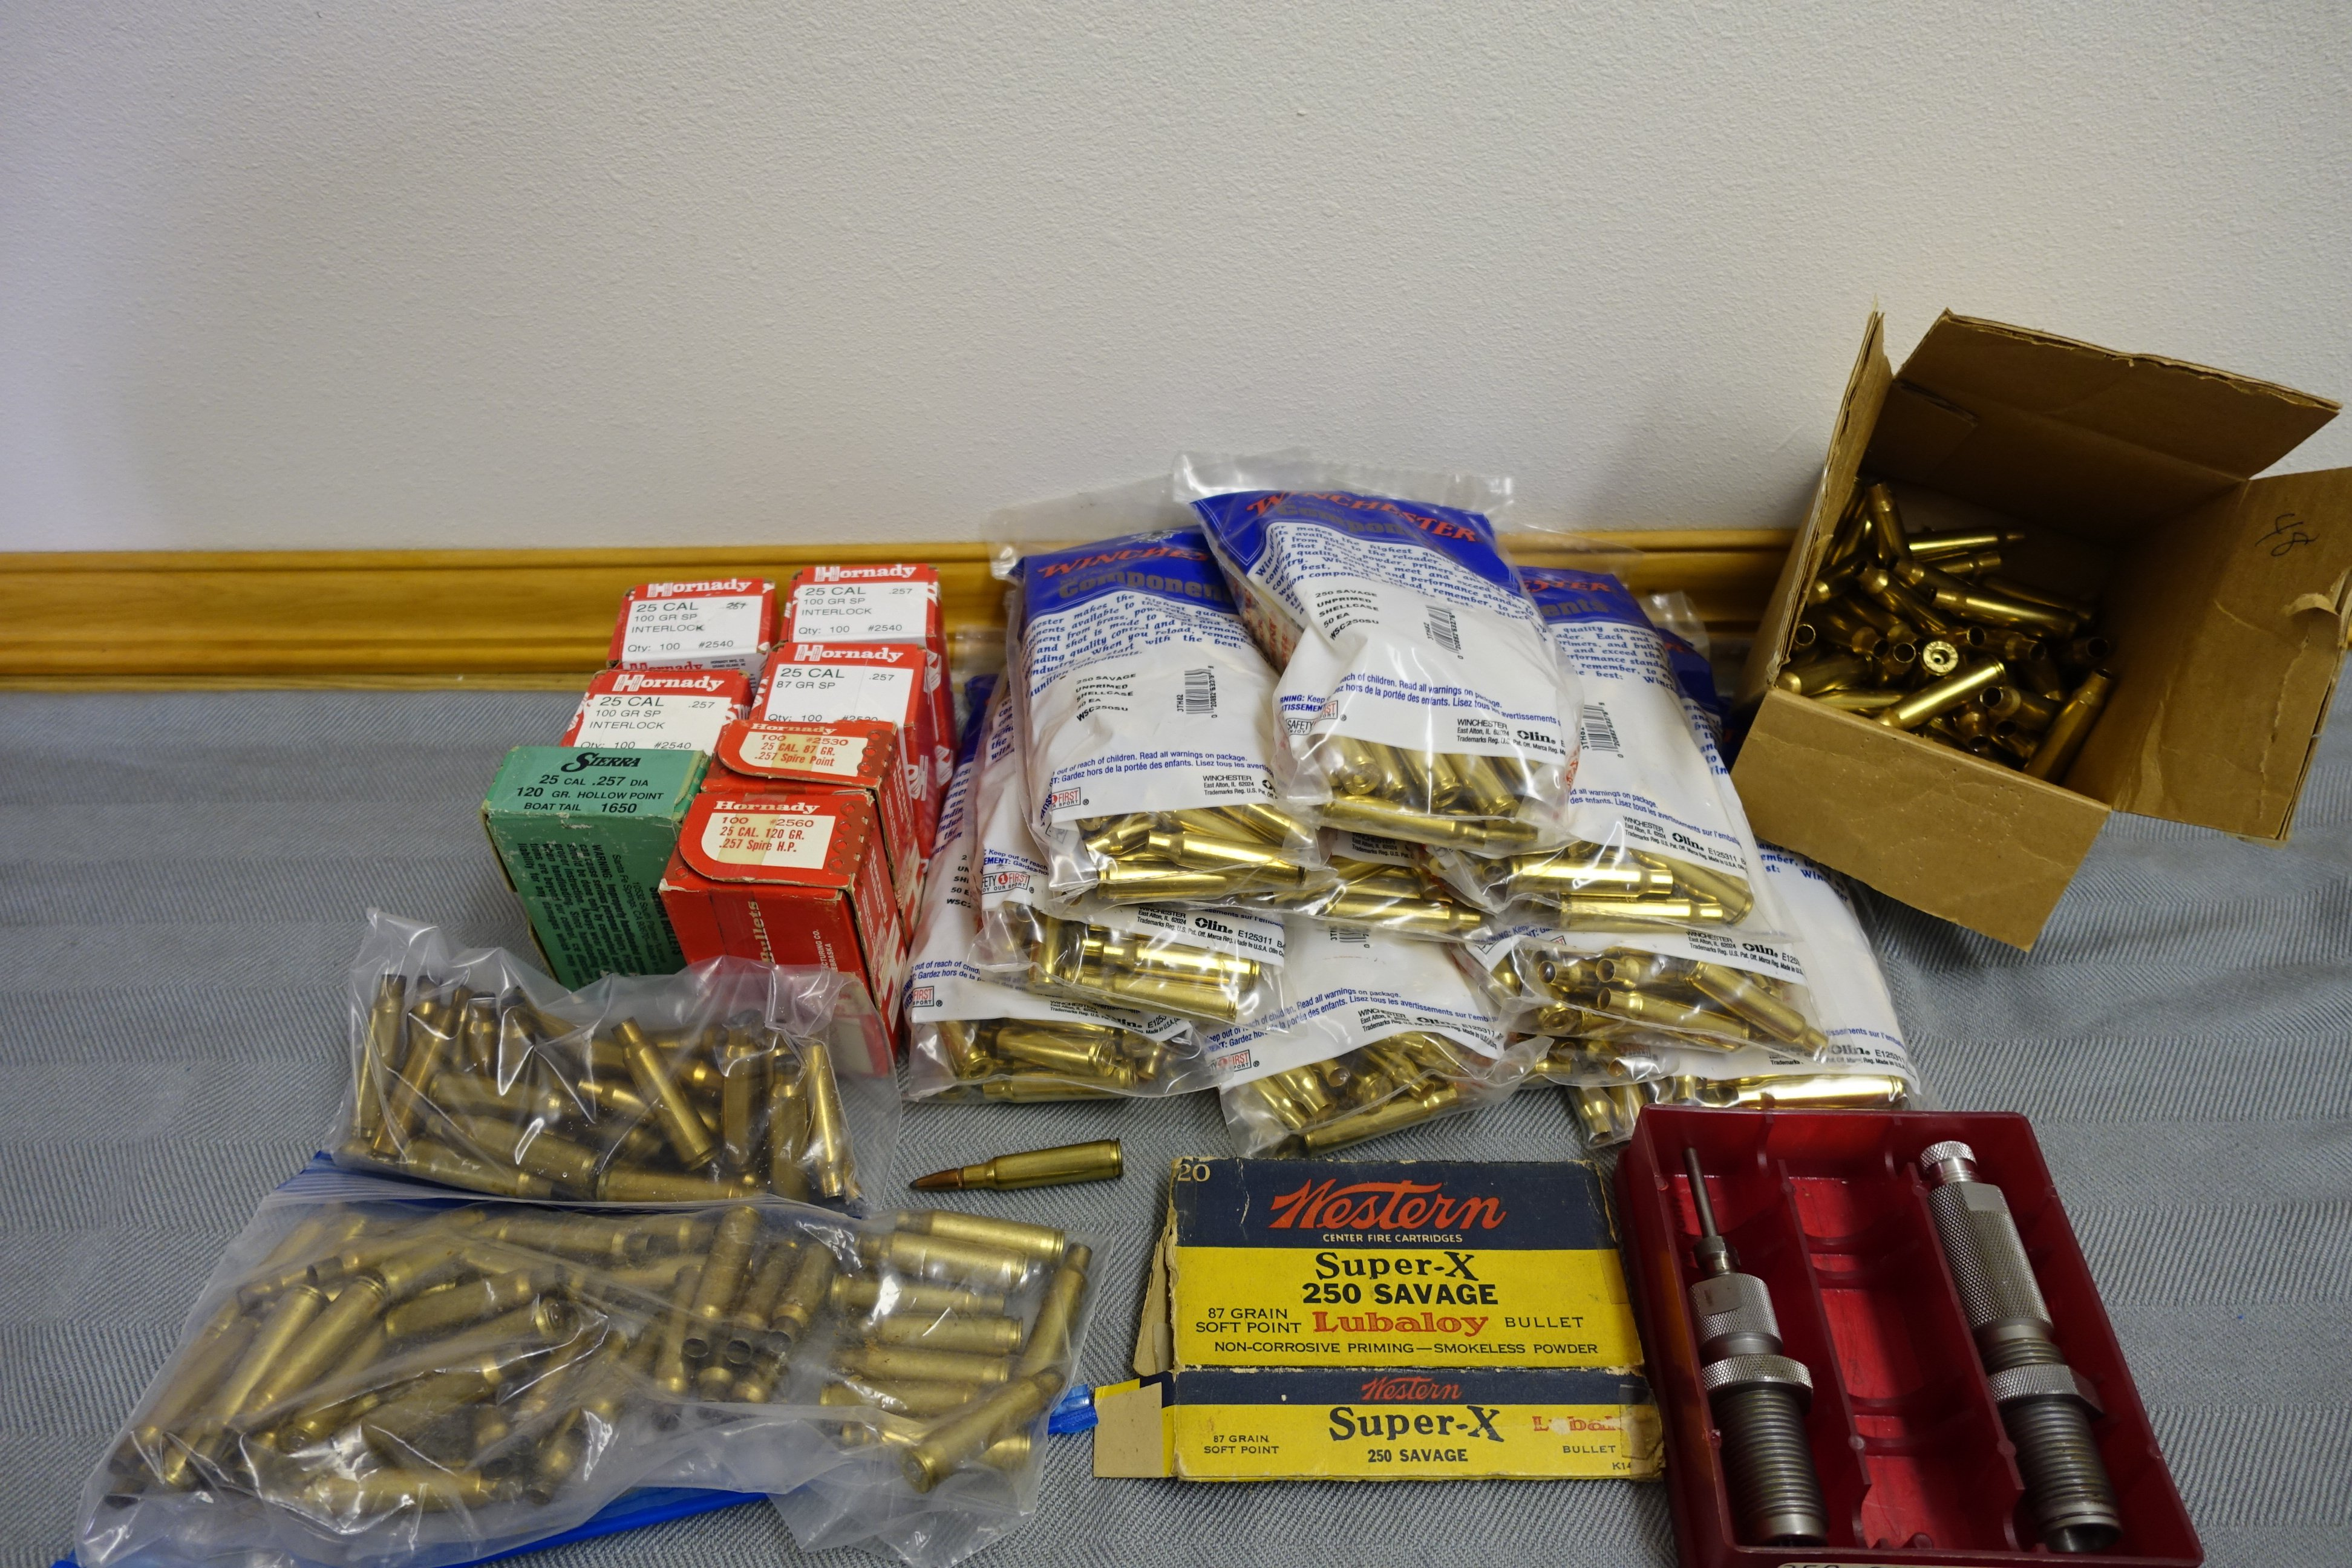 FS 250 Savage (250-3000) reloading components PRICE REDUCED